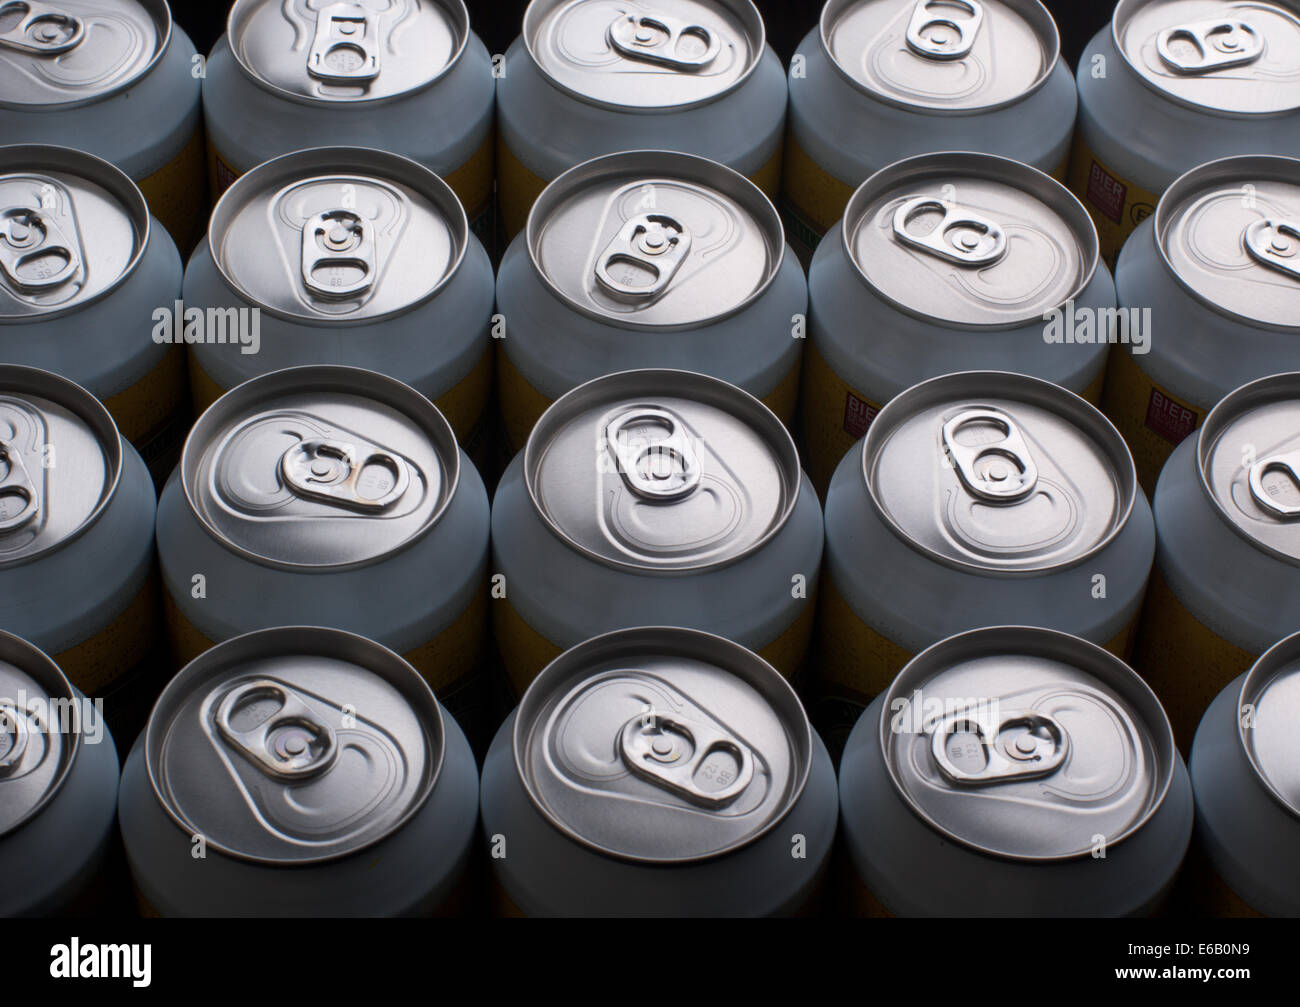 can,drink can - Stock Image